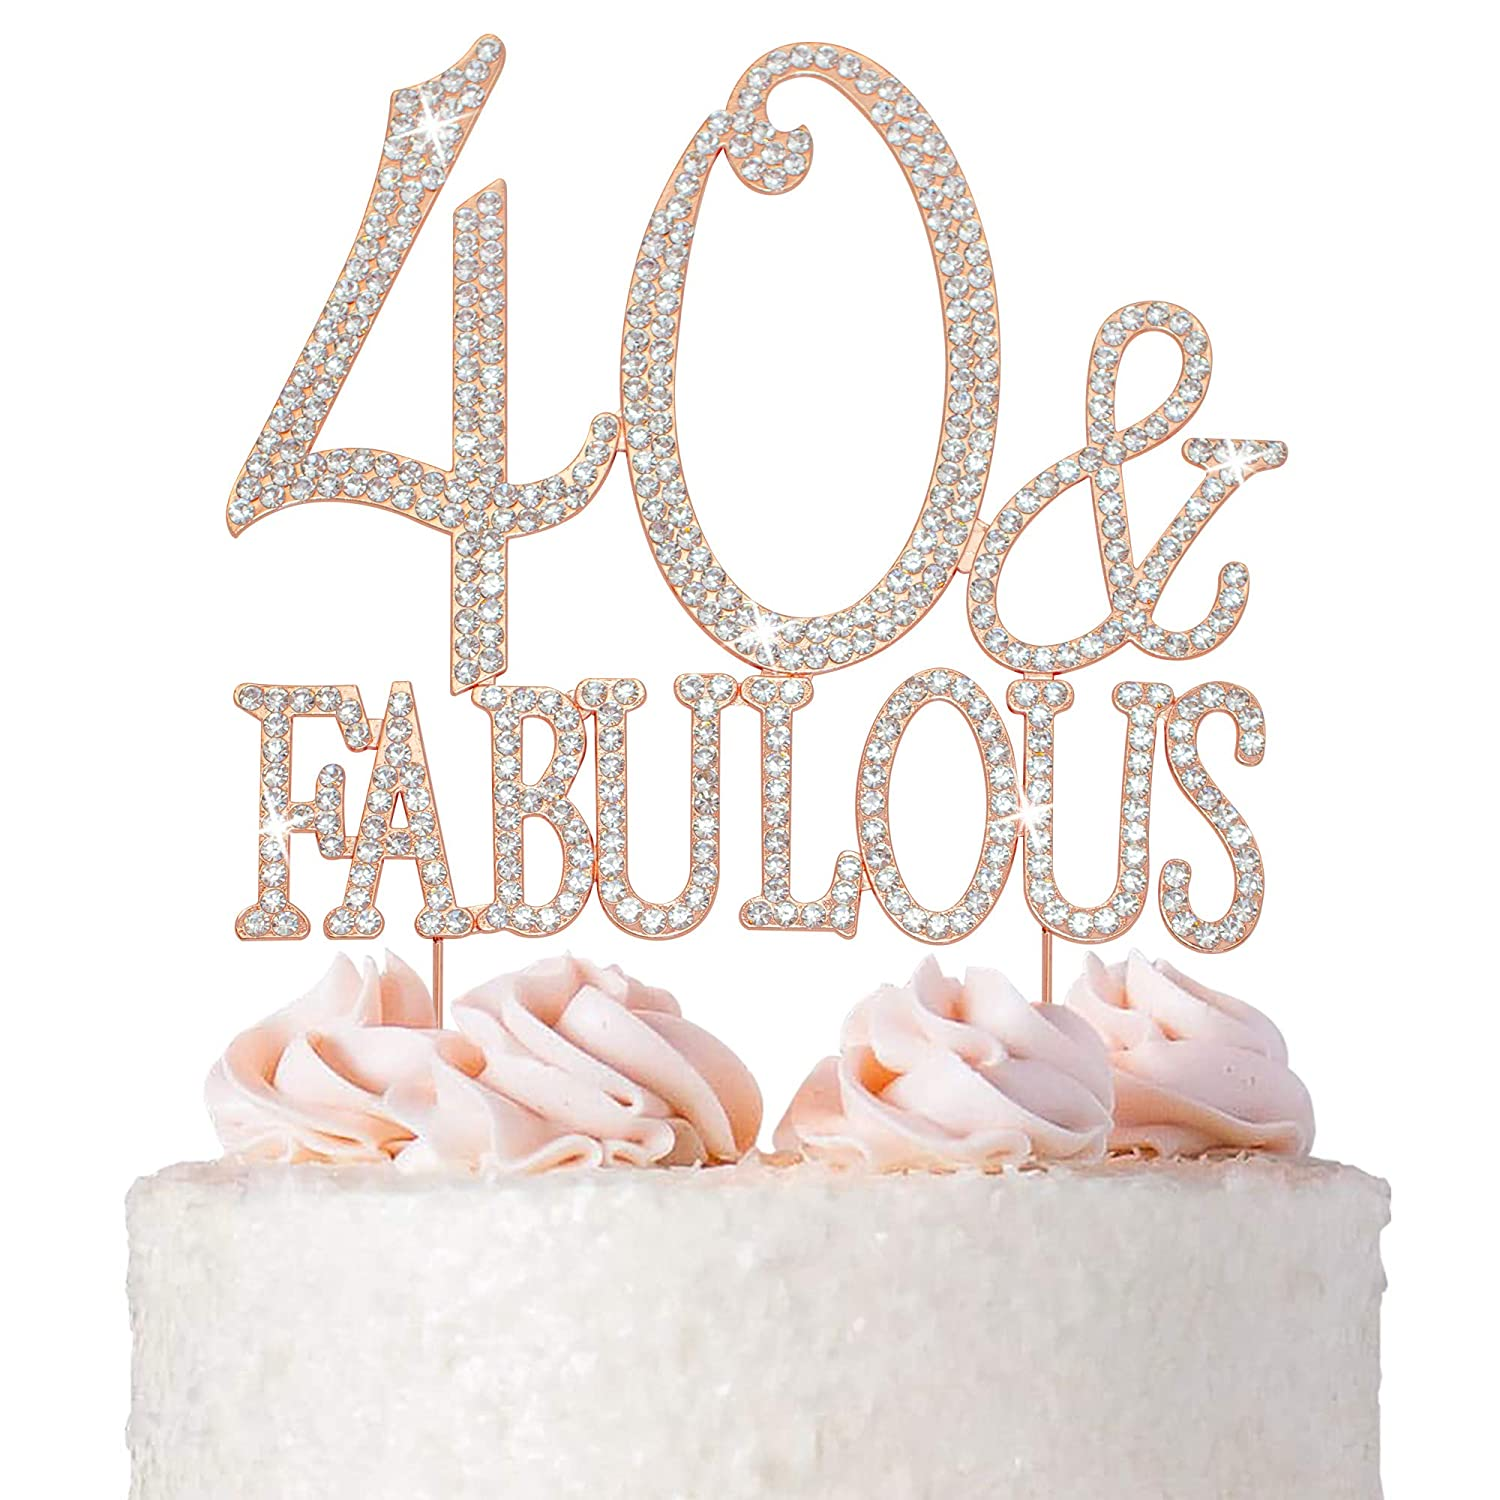 40 Cake Topper Animer and Some reservation price revision - Premium Rose 40t Gold Fabulous Metal